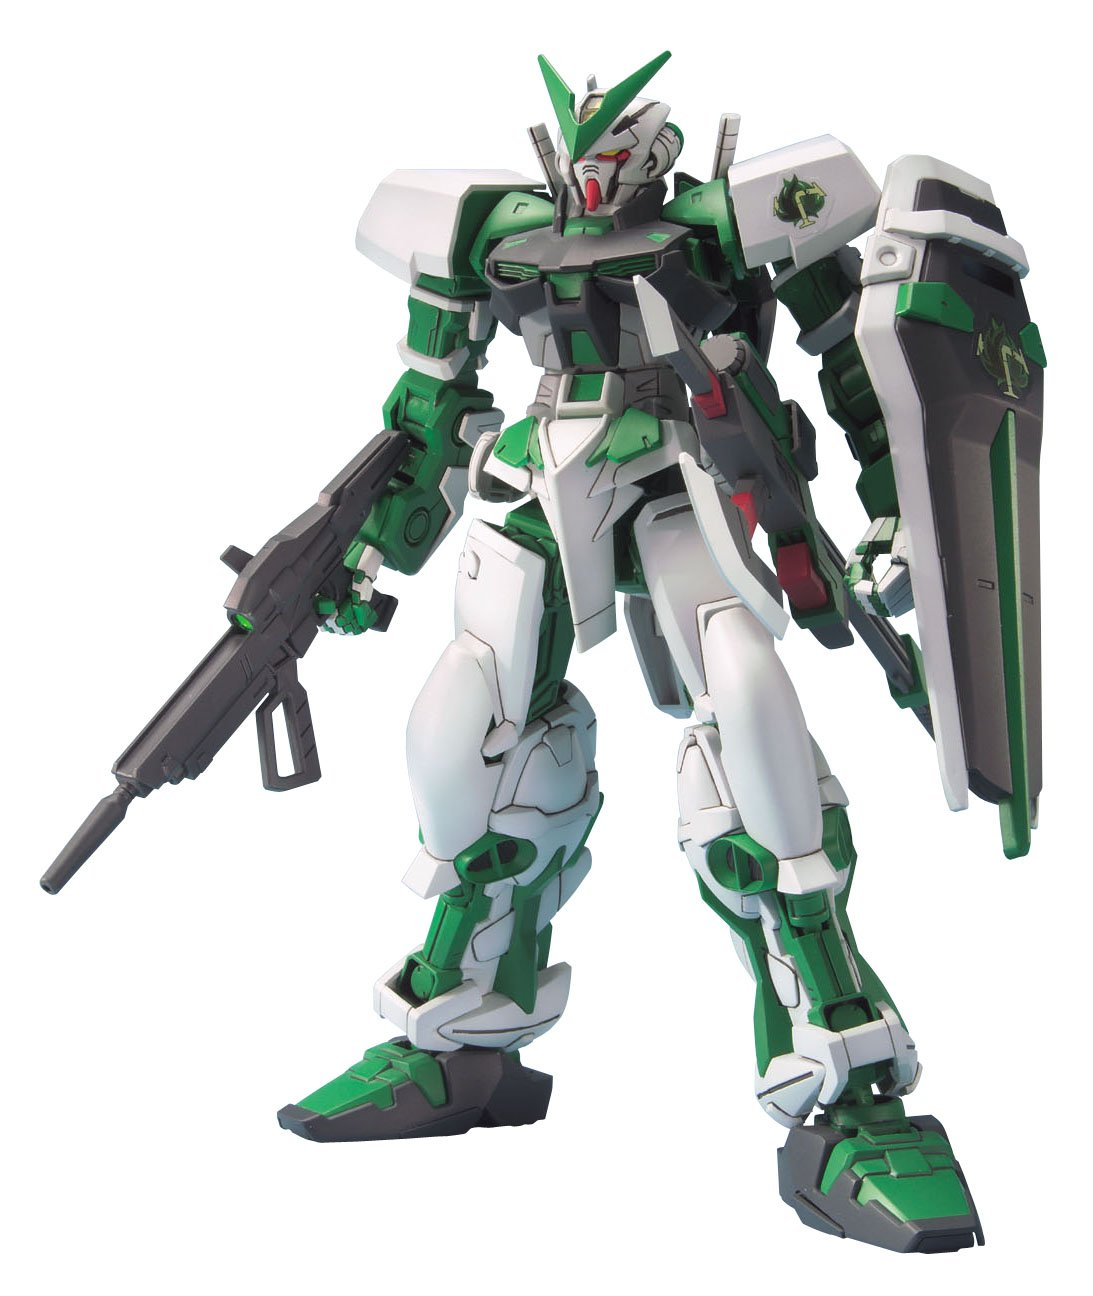 Bandai Hobby 16 Gundam Astray Green Frame 1 100 Blue Second Revise Seed Action Figure Toys Games